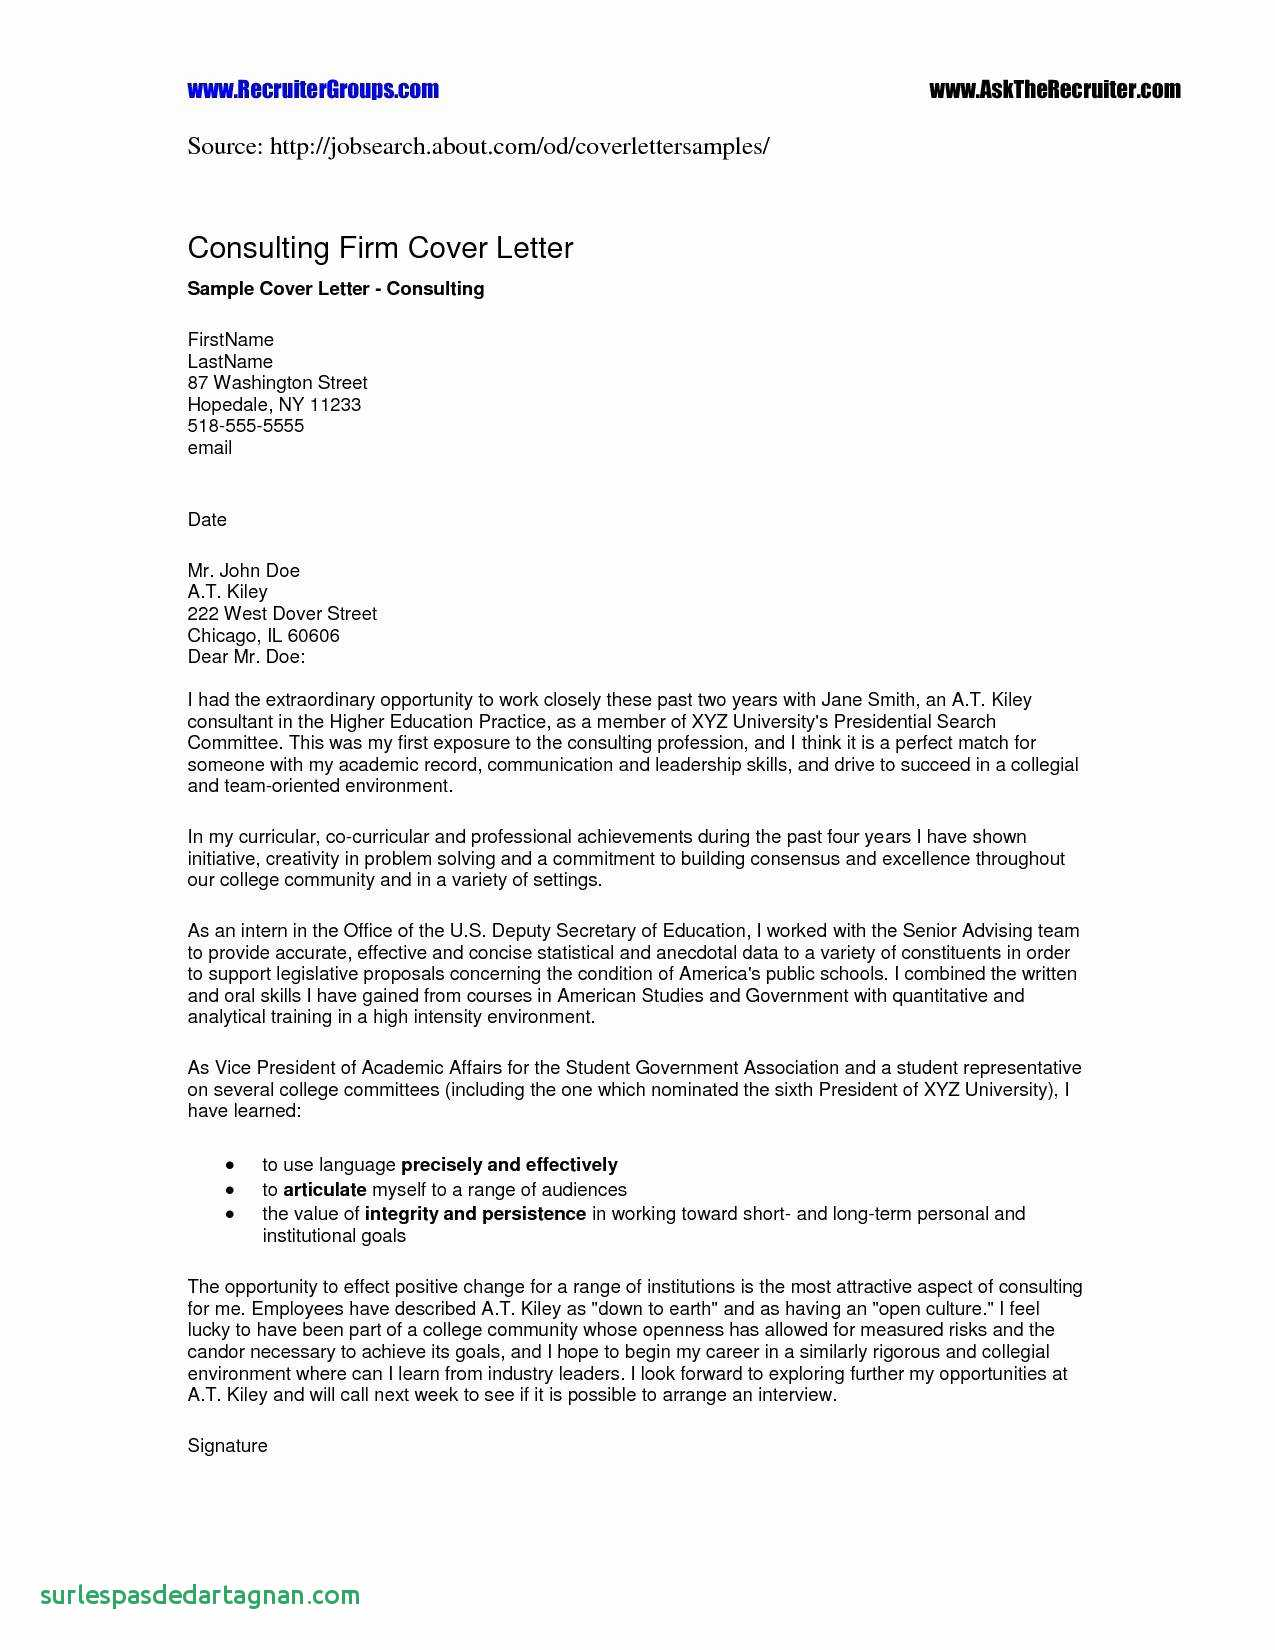 Personal Character Reference Letter Template - Certificate Good Moral Character Template Unique 30 Inspirational